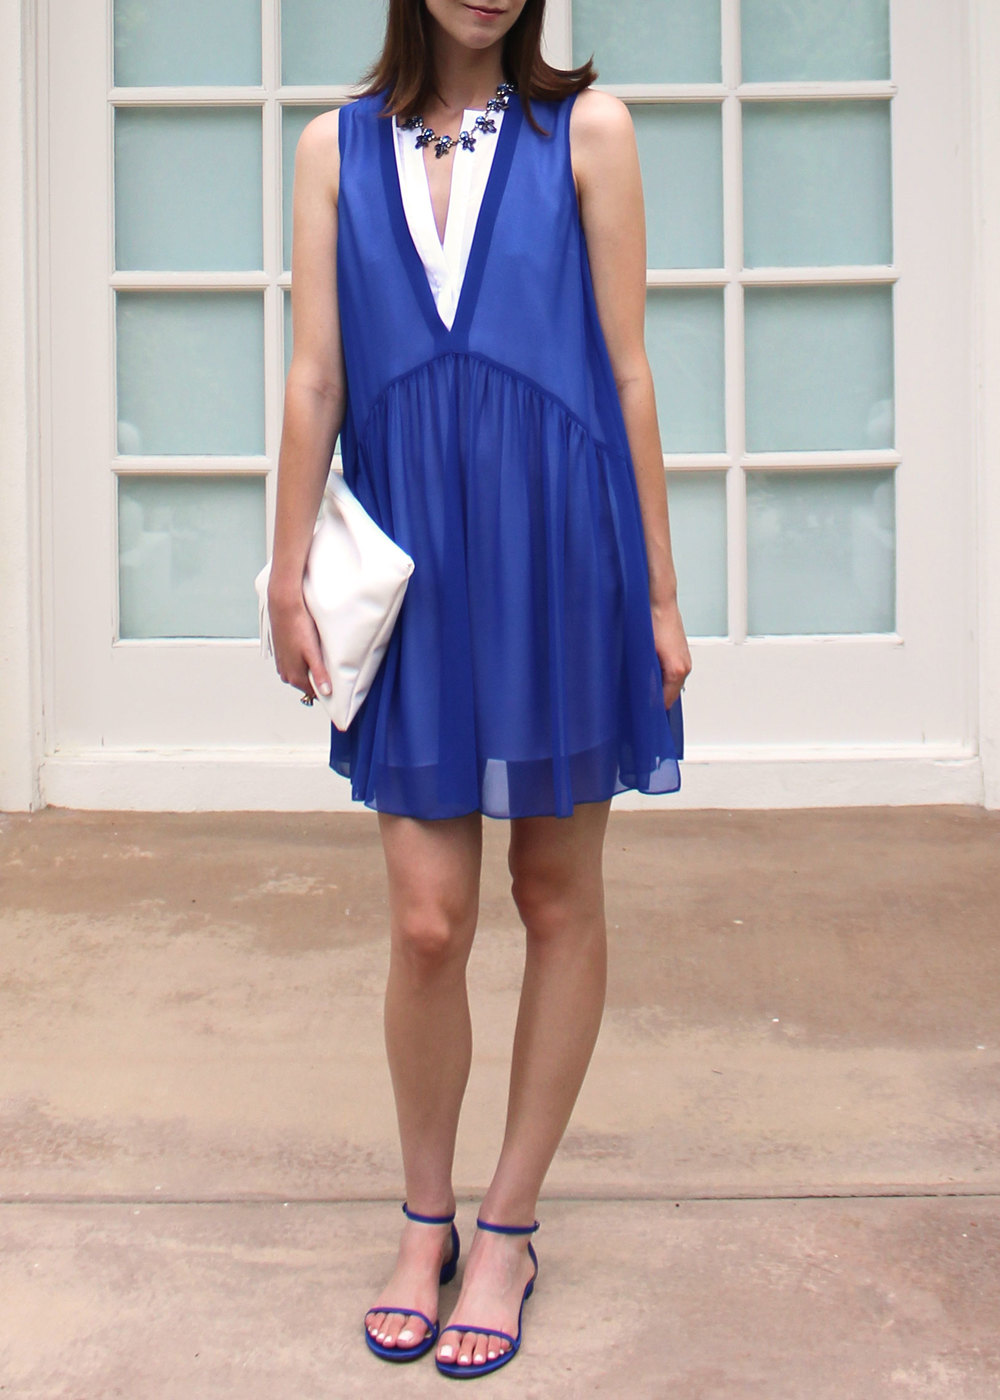 Blue and white Sandro dress with M.Gemi flats.